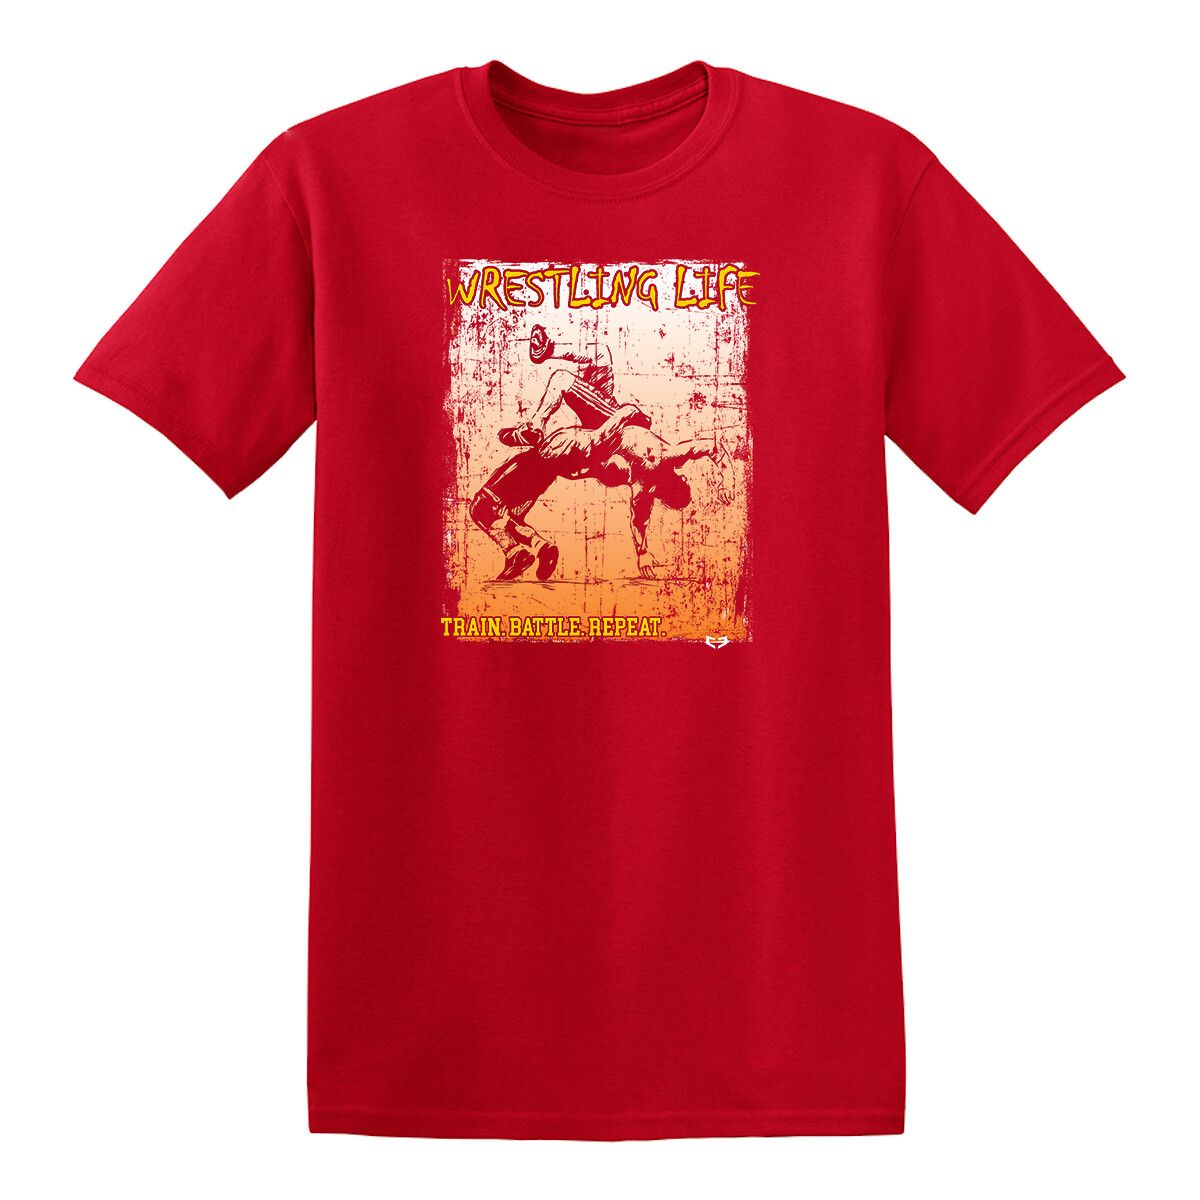 5 POINT THROW GRAPHIC TEE